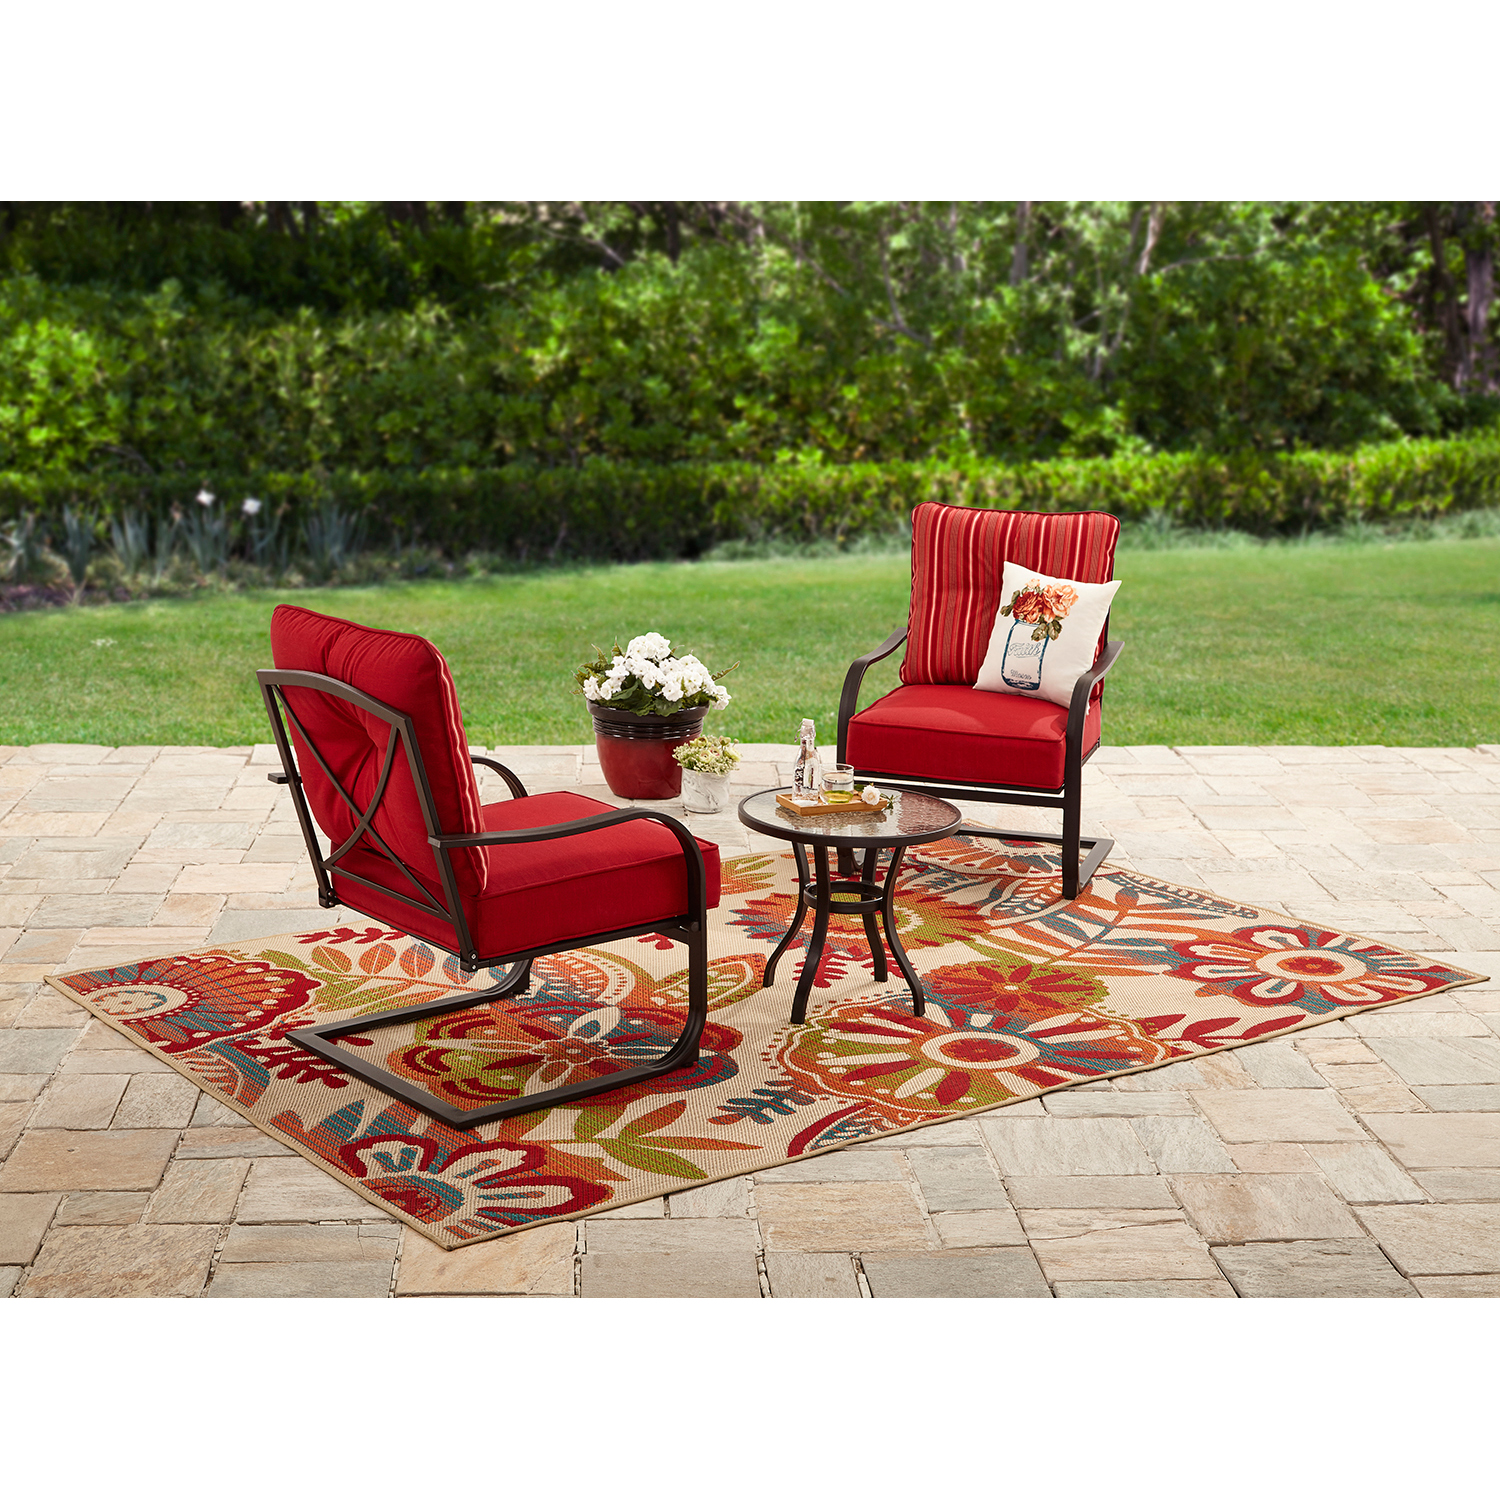 Mainstays Forest Hills 3pc Outdoor Chat Set, Seats 2, Tan